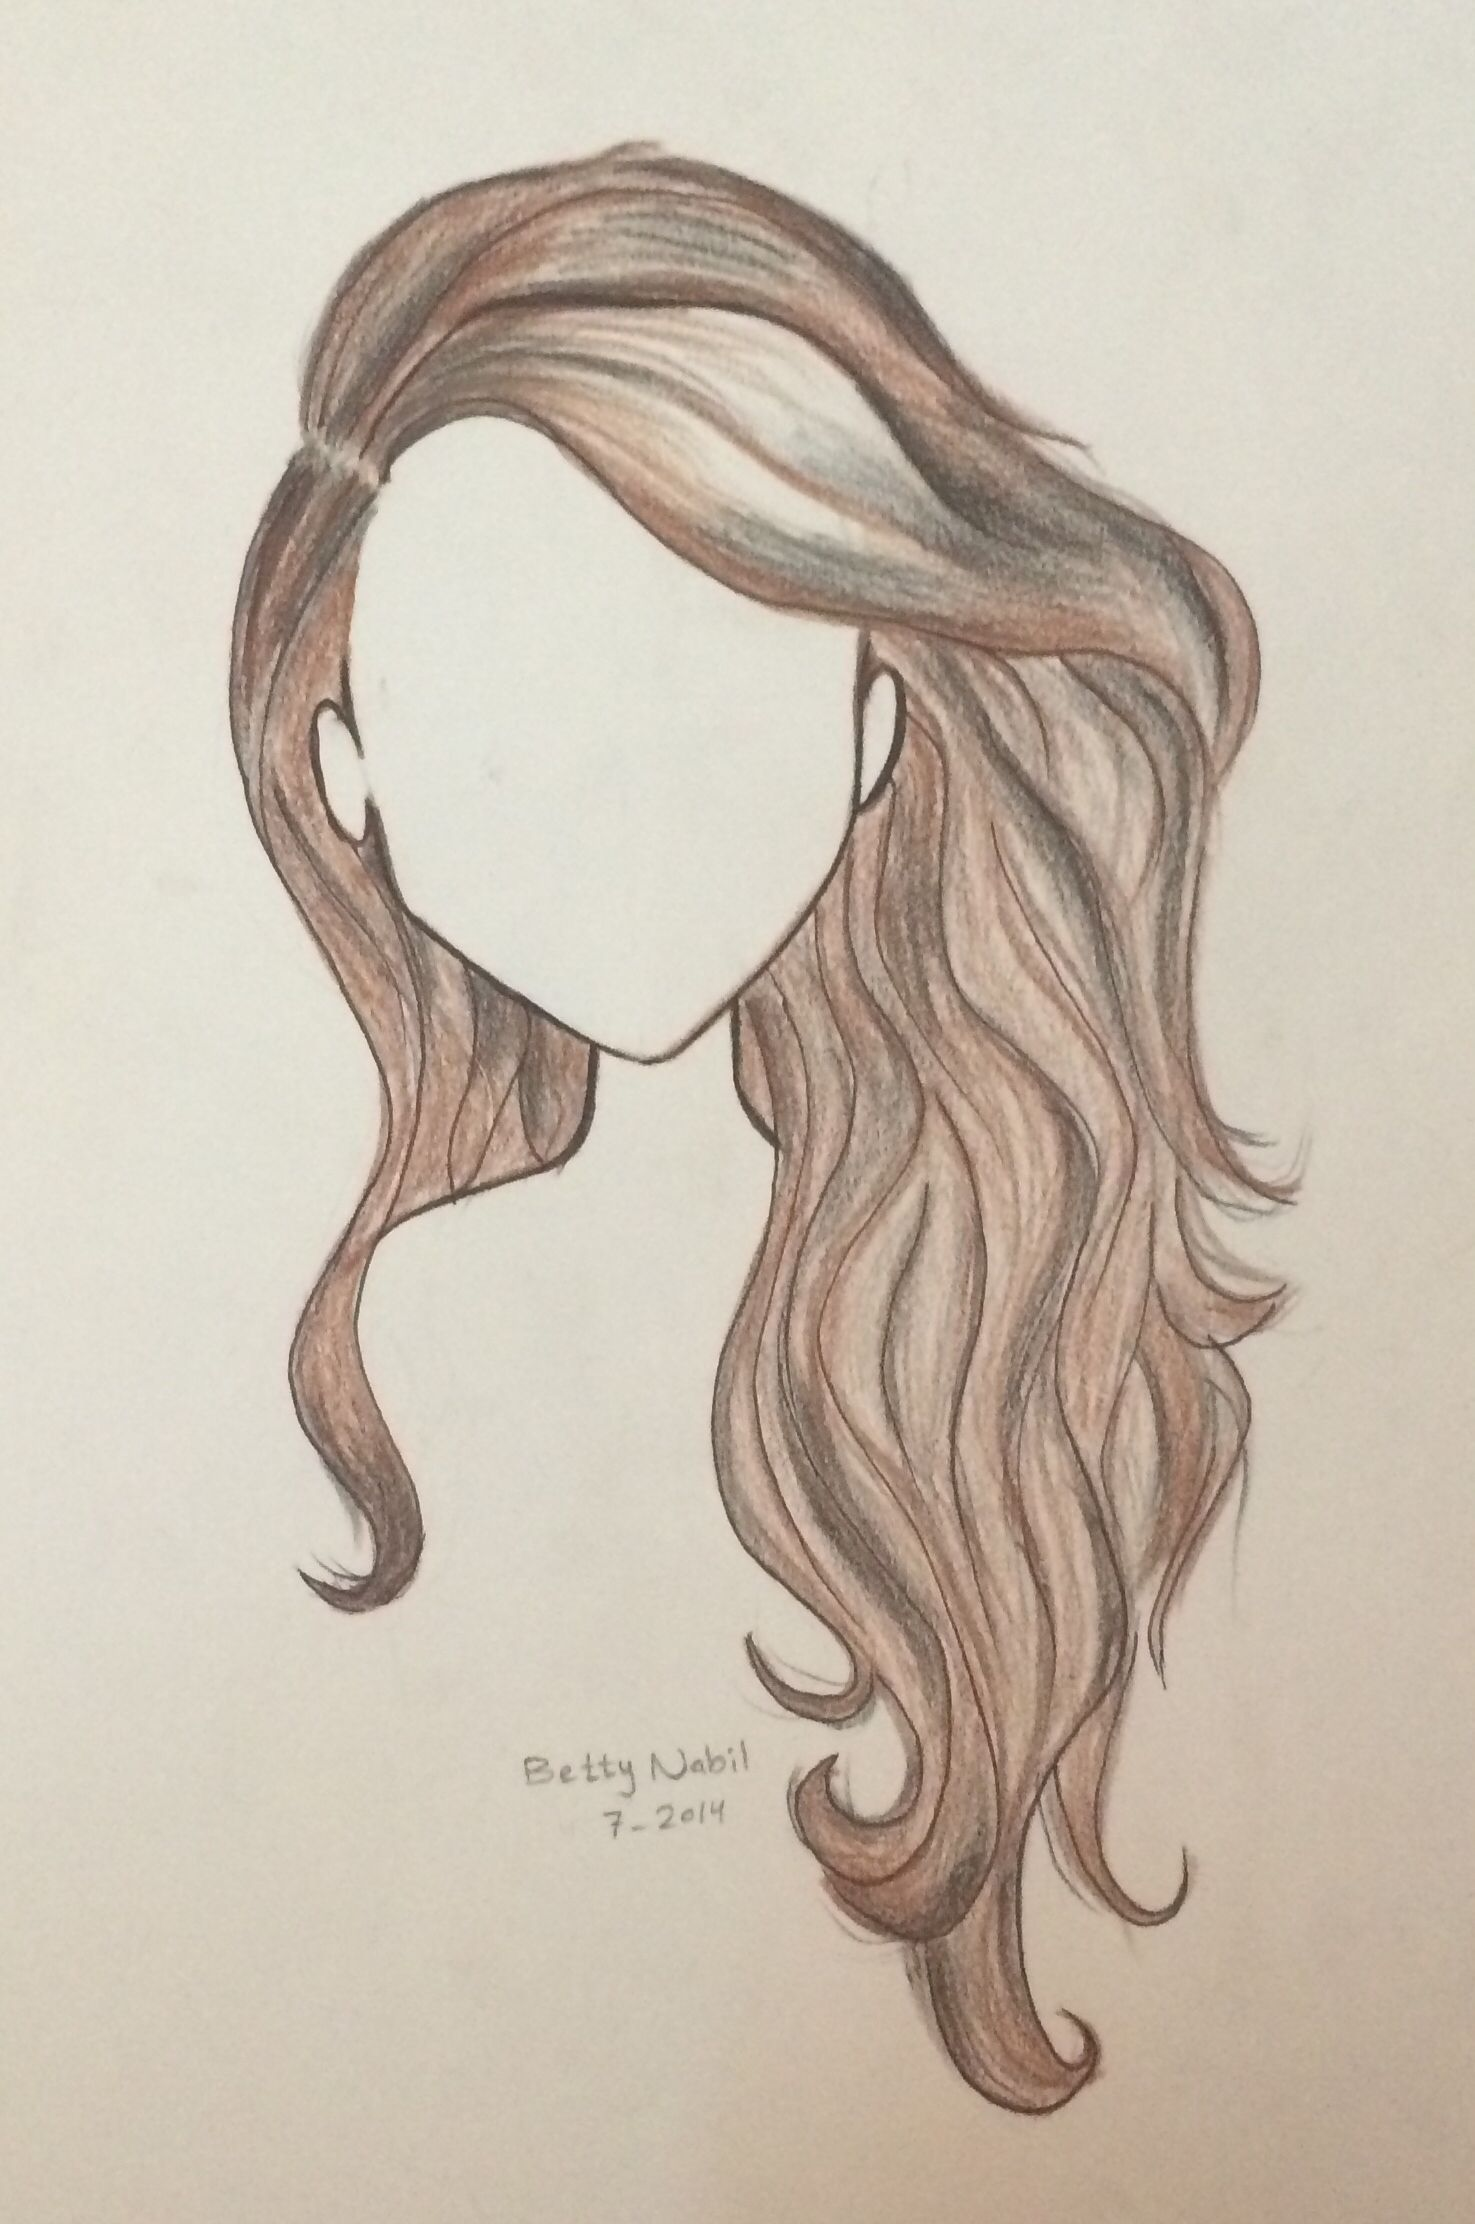 10 Spectacular Make A Realistic Skin Blending Technique Ideas In 2020 Hair Sketch Girl Hair Drawing How To Draw Hair